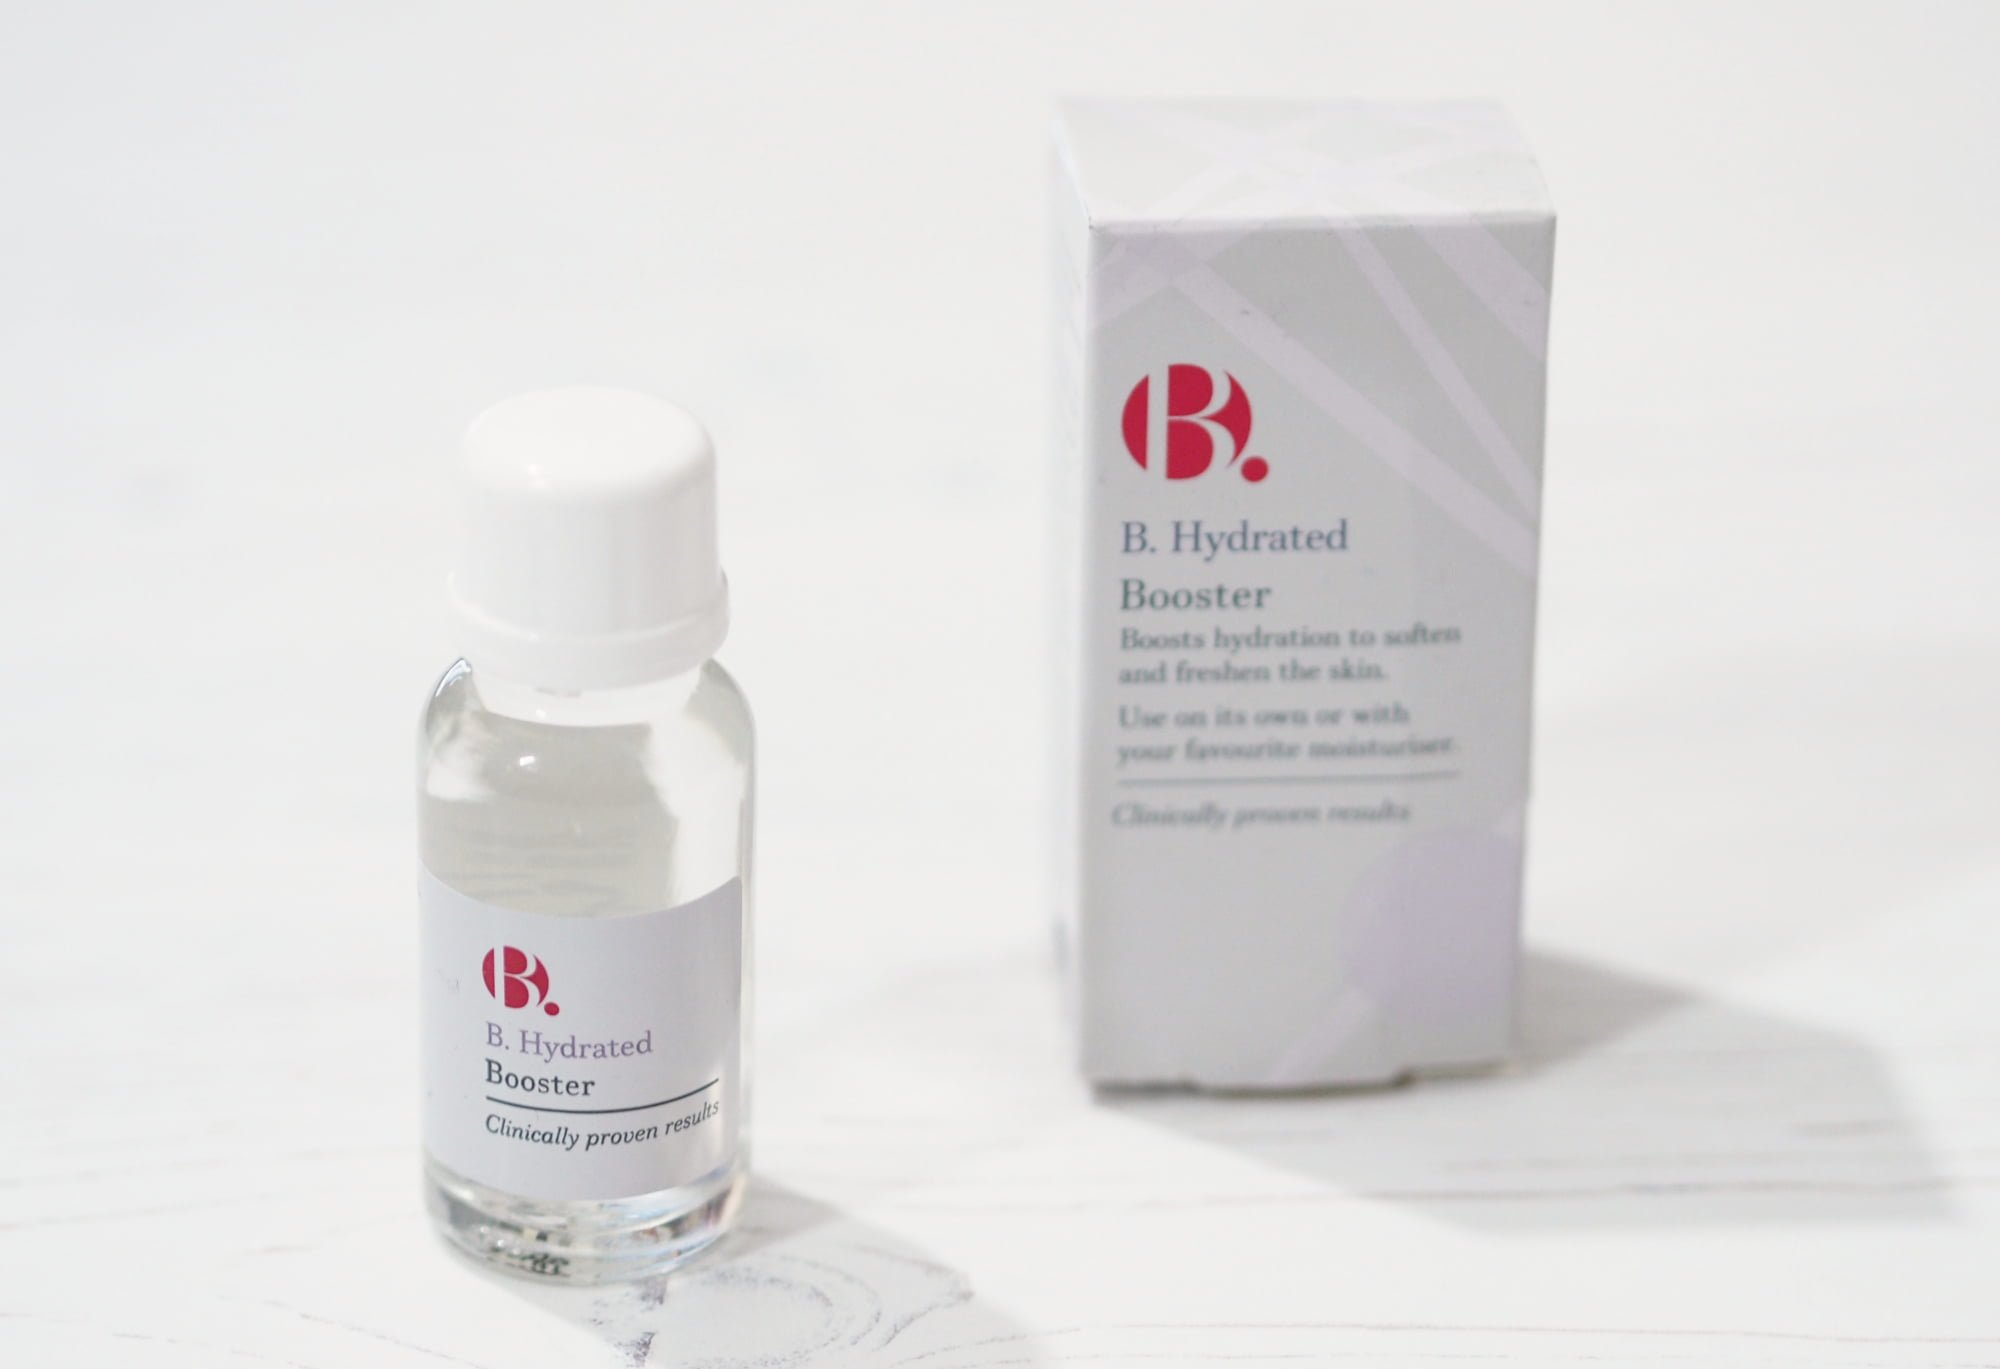 B Hydrated Booster + B Glowing Booster